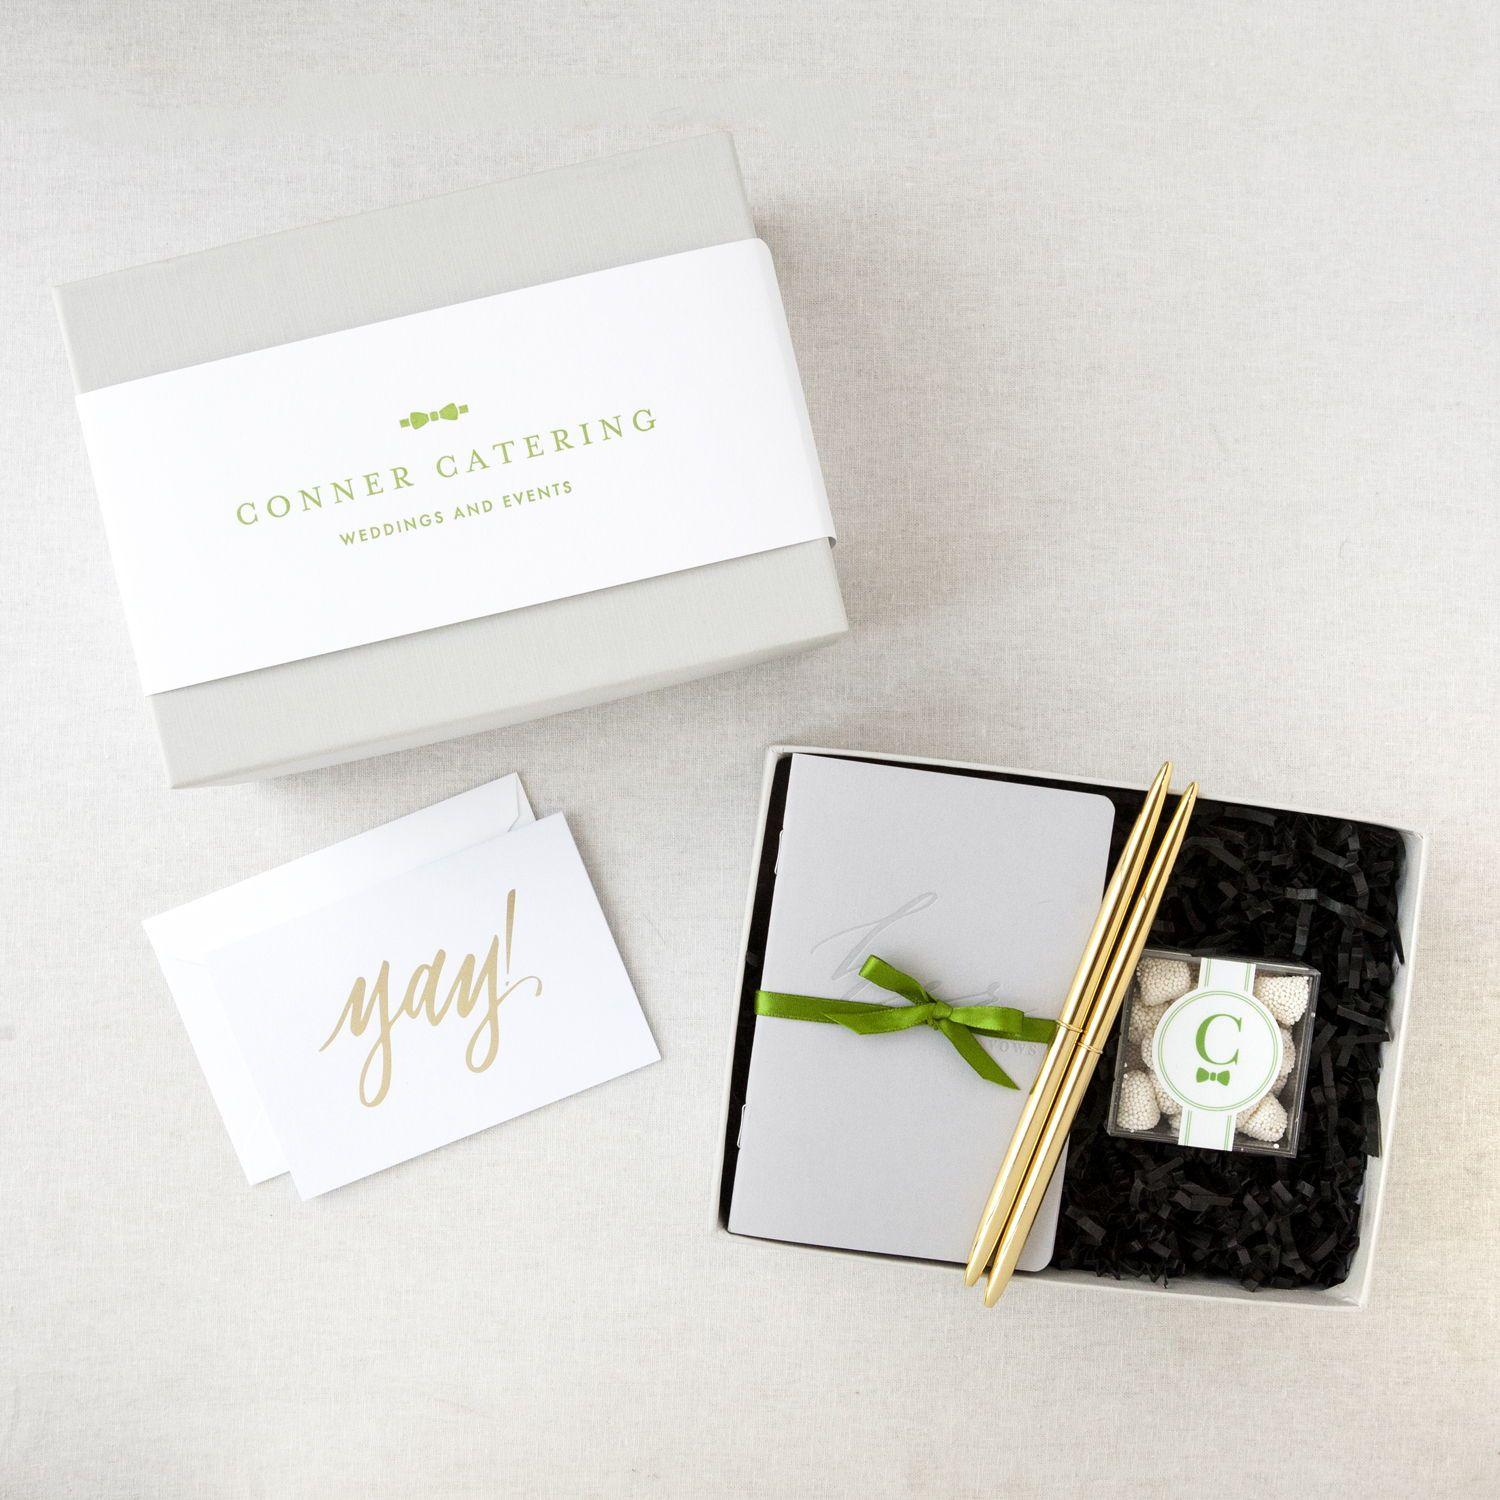 Branded Client Onboarding Gifts Designed By Foxblossom Co